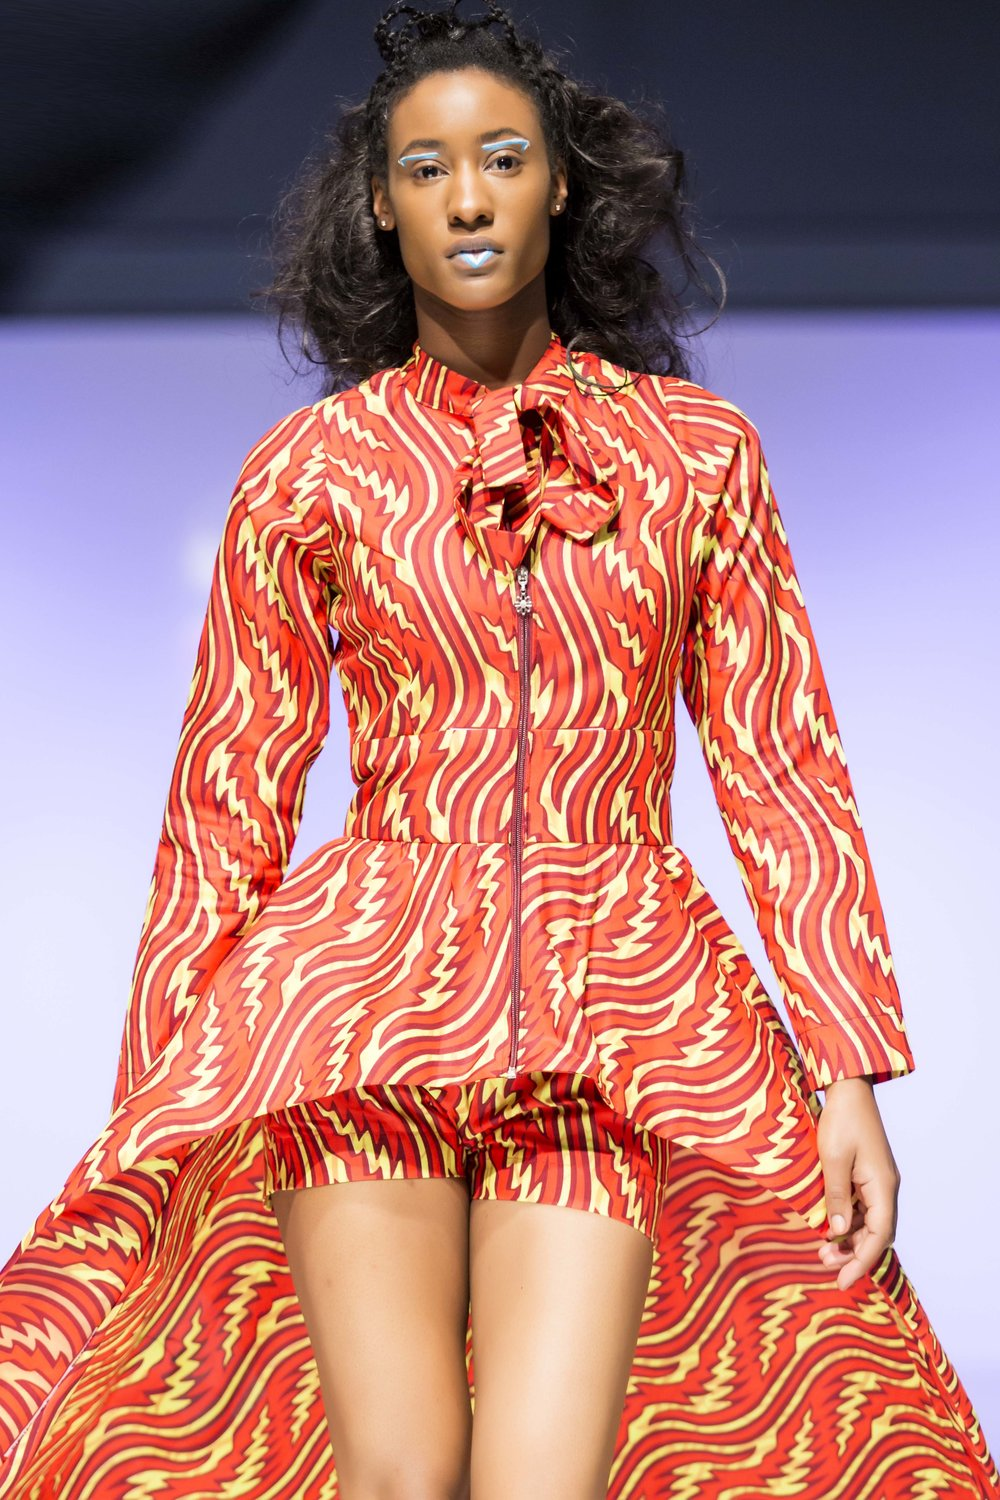 African Fashion Today-Joanna Mitroi Photography 0832 - lores - Copy.jpg